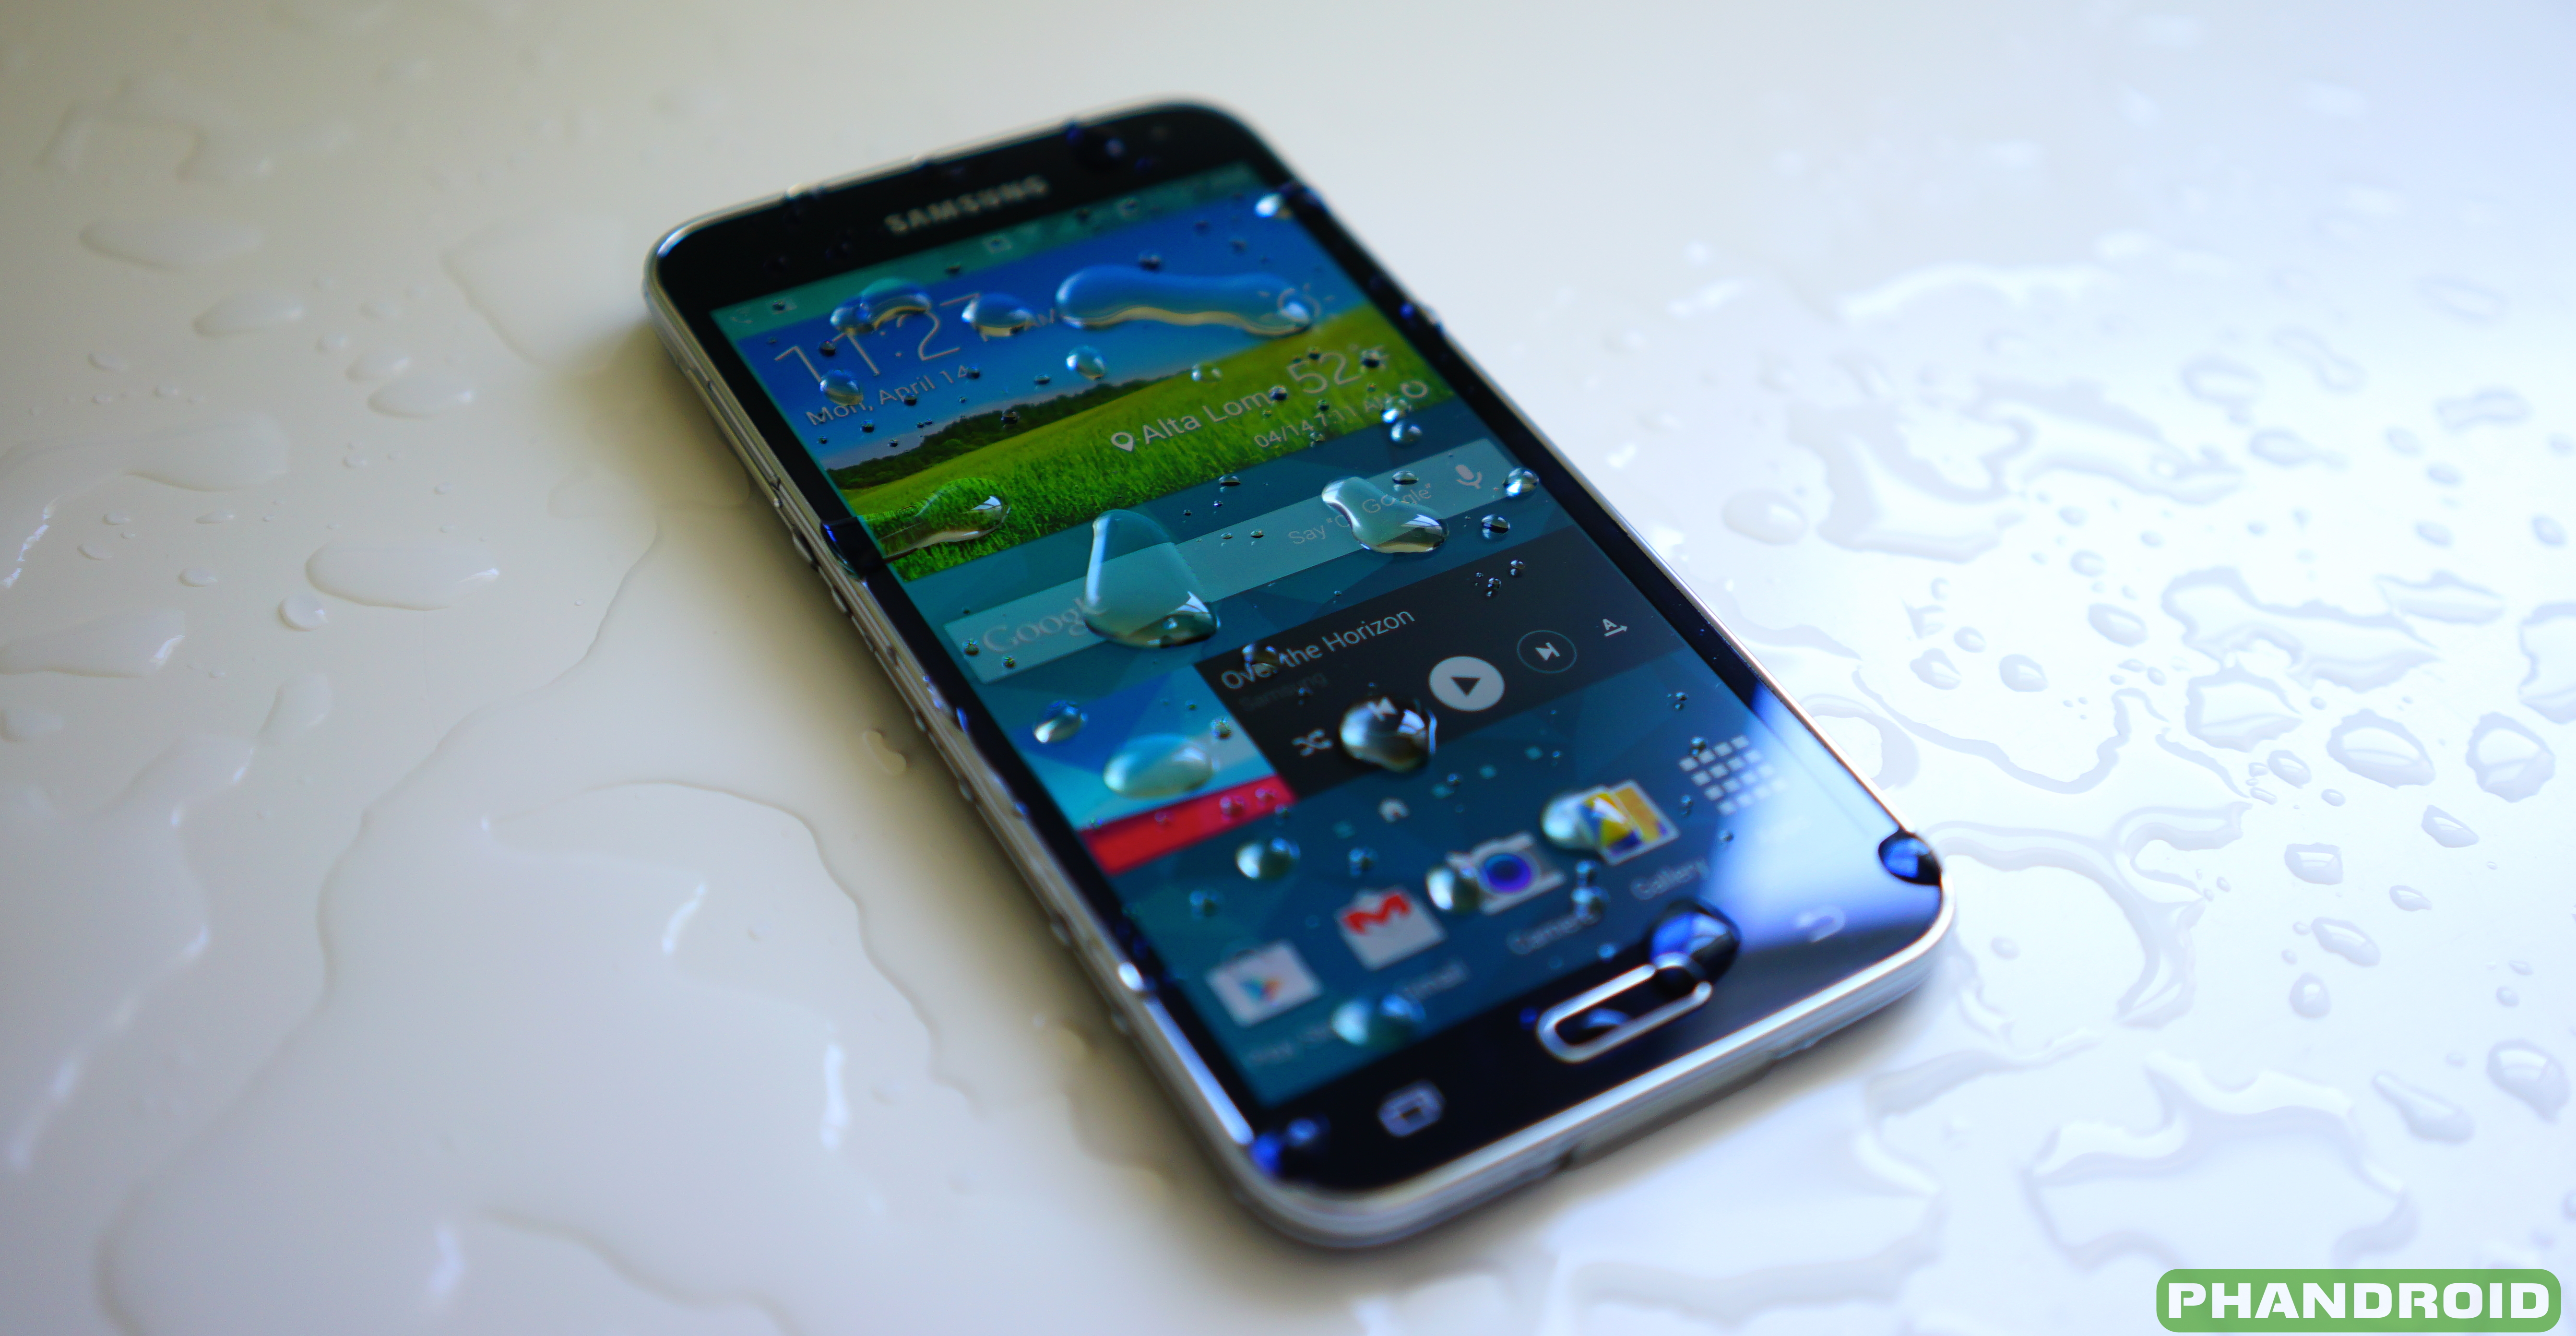 Image result for SPRINT SAMSUNG GALAXY S5 TO RECEIVE ANDROID 5.0 TOMORROW